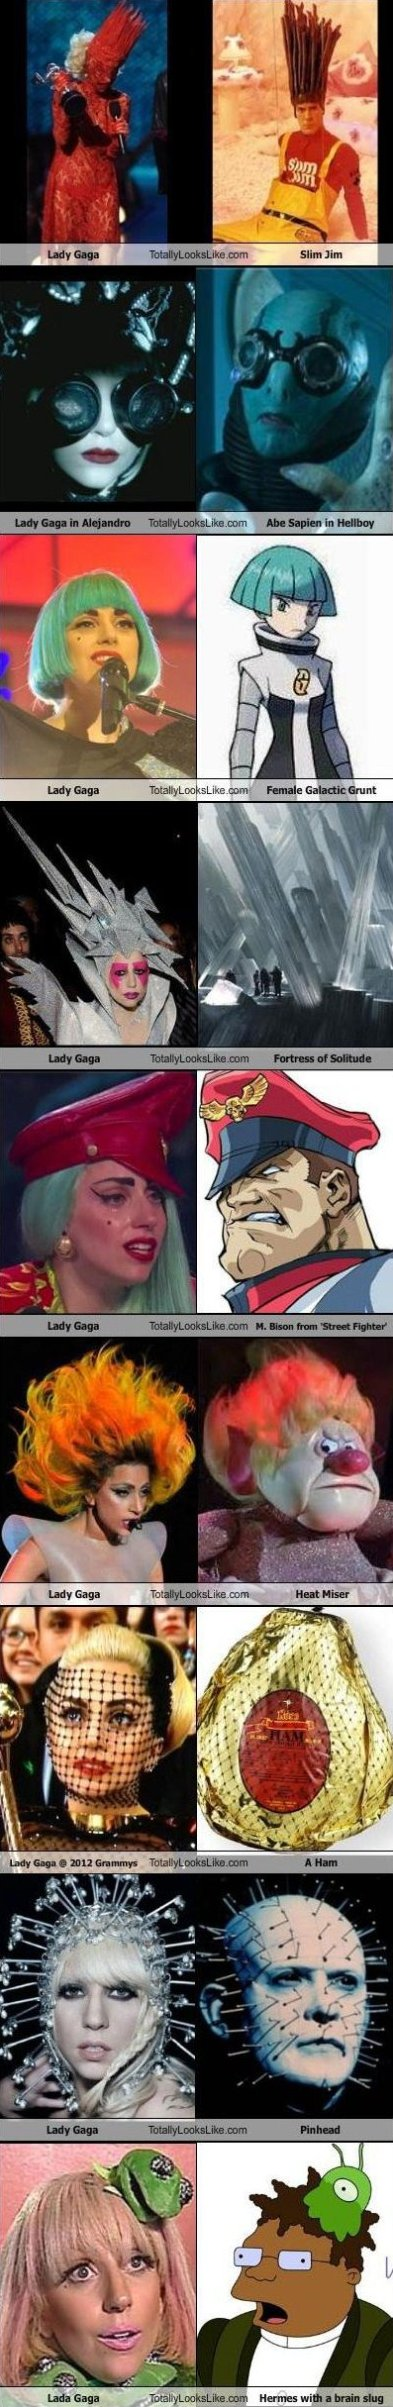 Lady Gaga Look a Likes